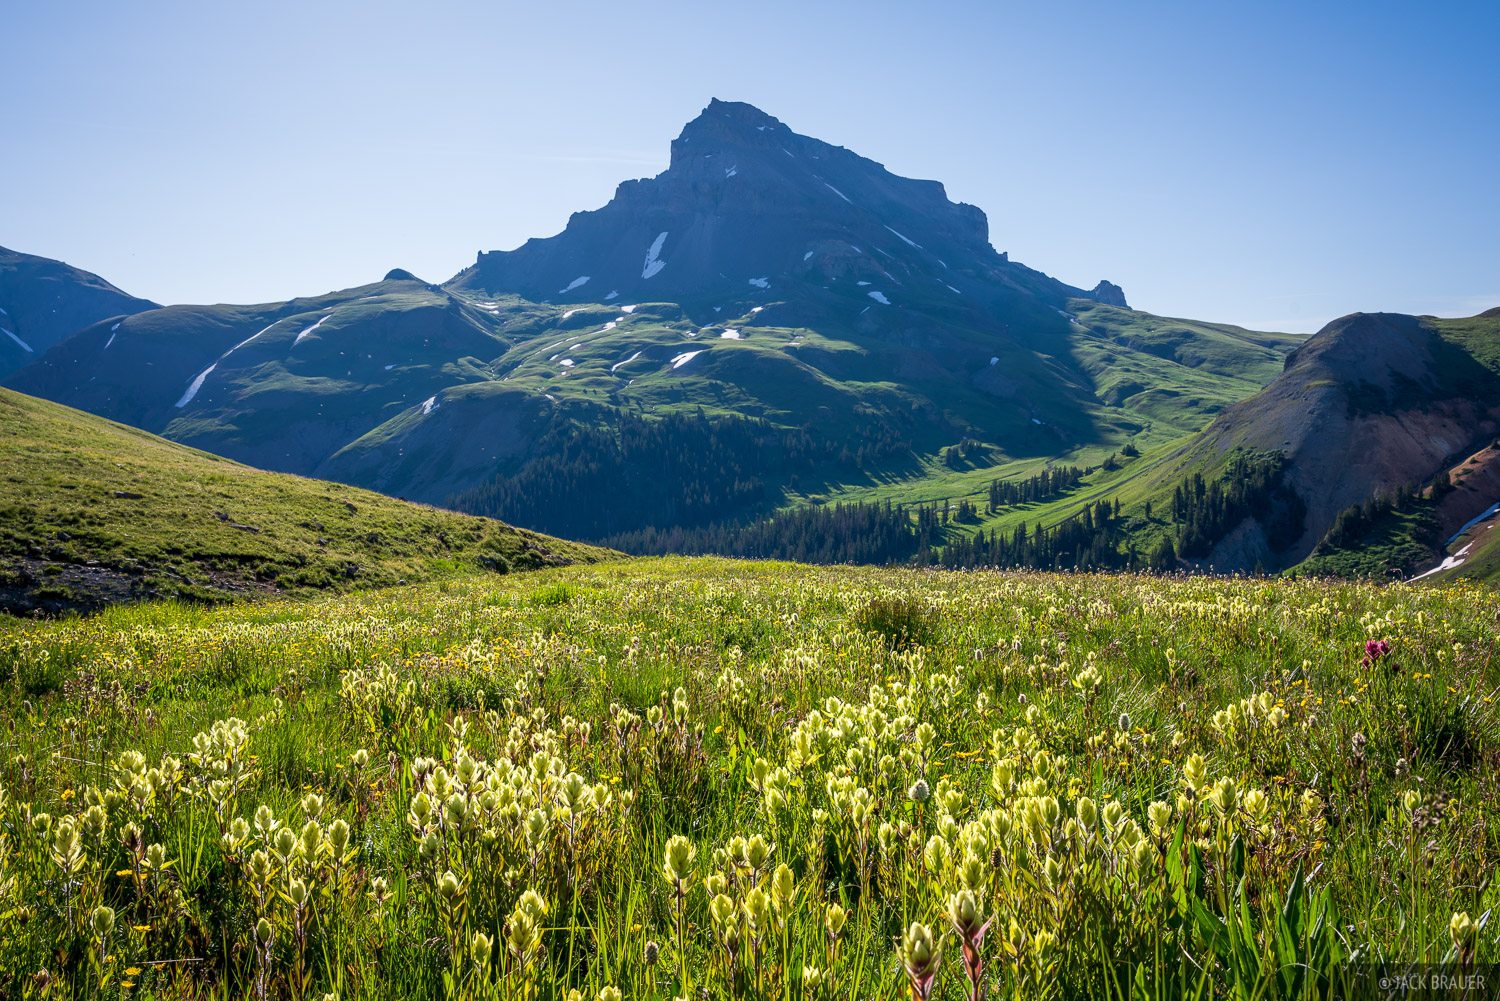 Colorado, San Juan Mountains, Uncompahgre Peak, Uncompahgre Wilderness, wildflowers, photo